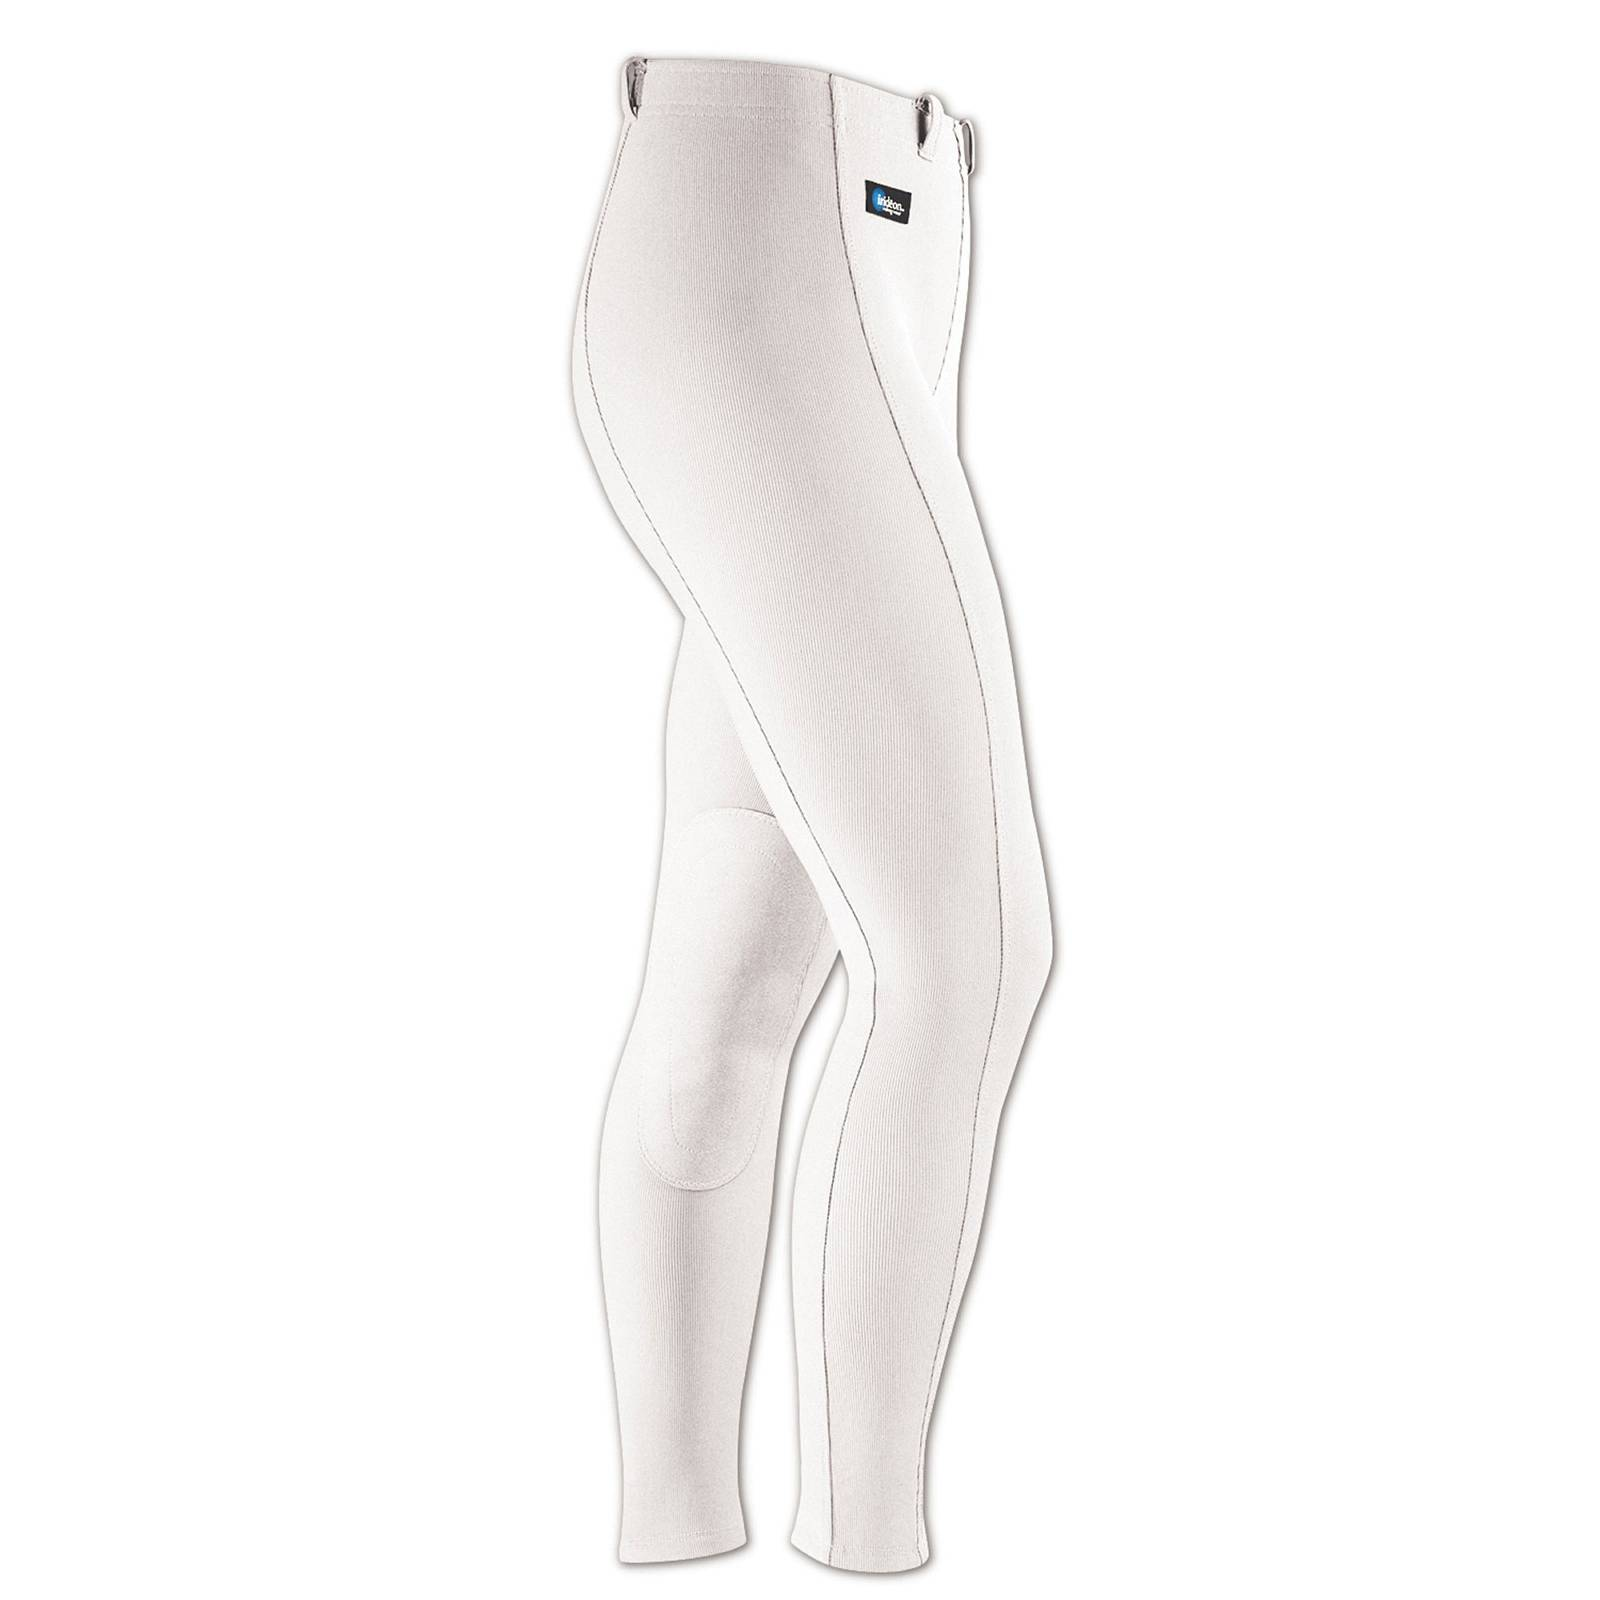 Outlet - Irideon Cadence Stretch-Cord Breeches - Kids, Knee Patch, X-Large, White